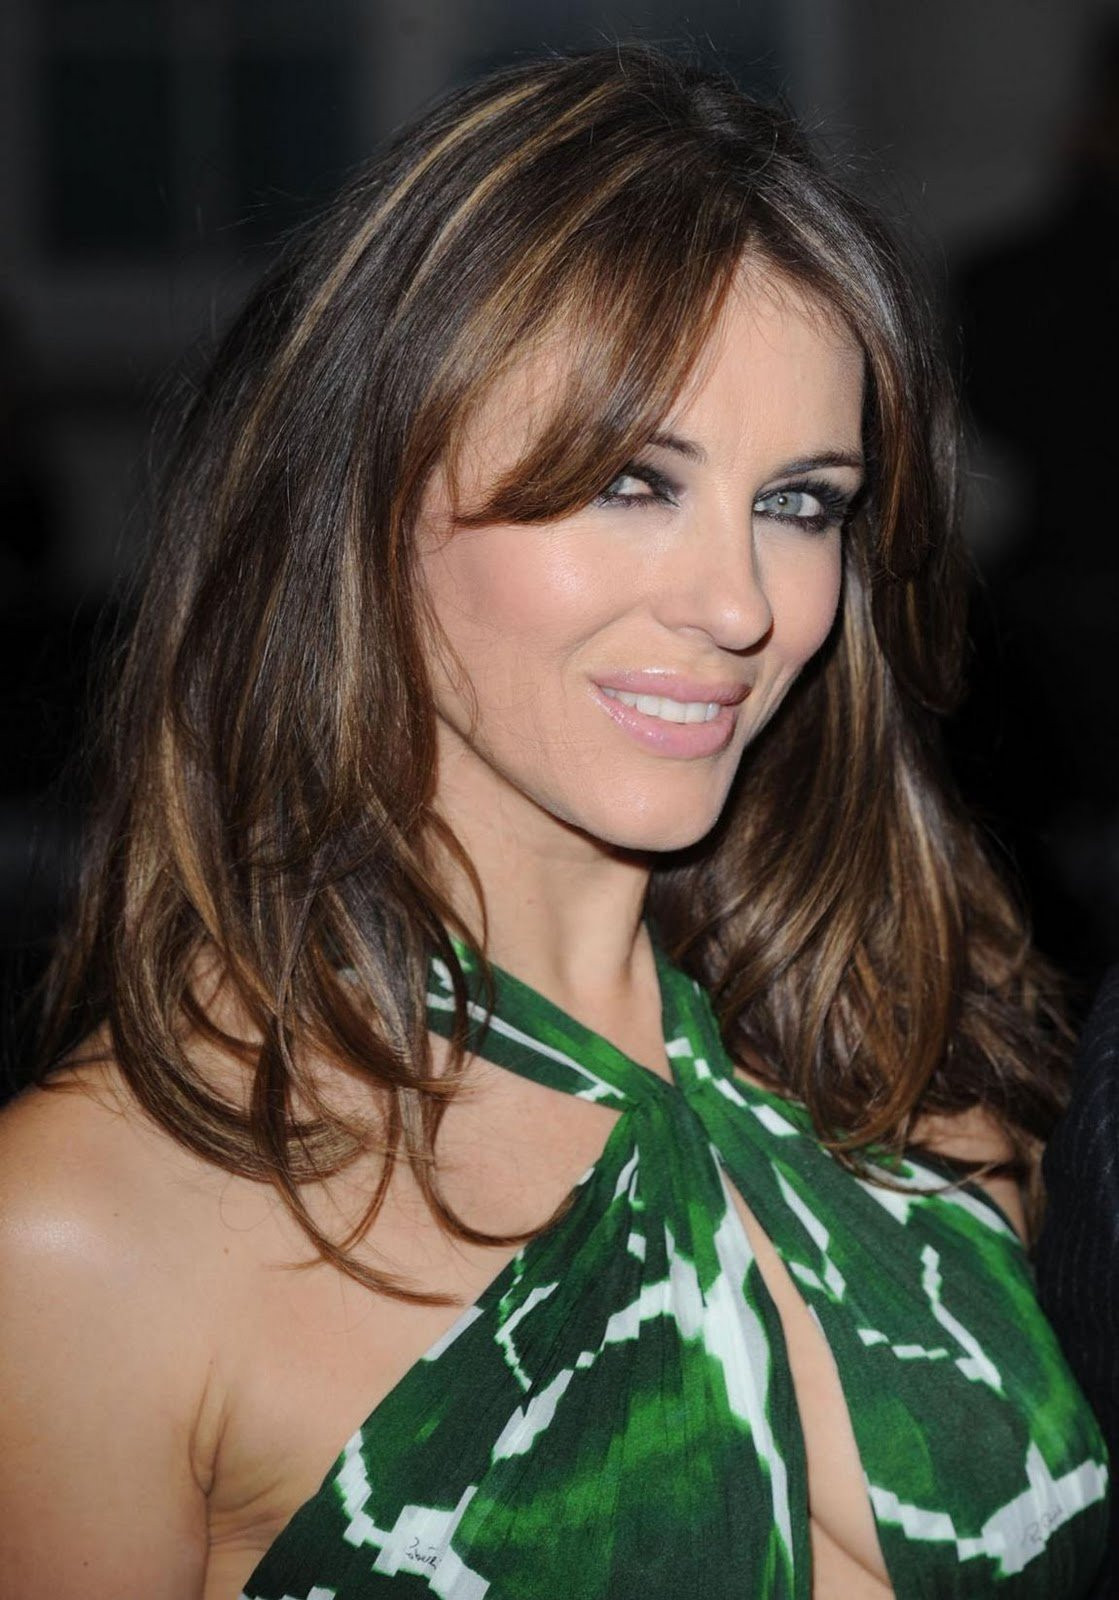 The Best Elizabeth Hurley Hairstyle Trendy Hairstyles 2014 Pictures